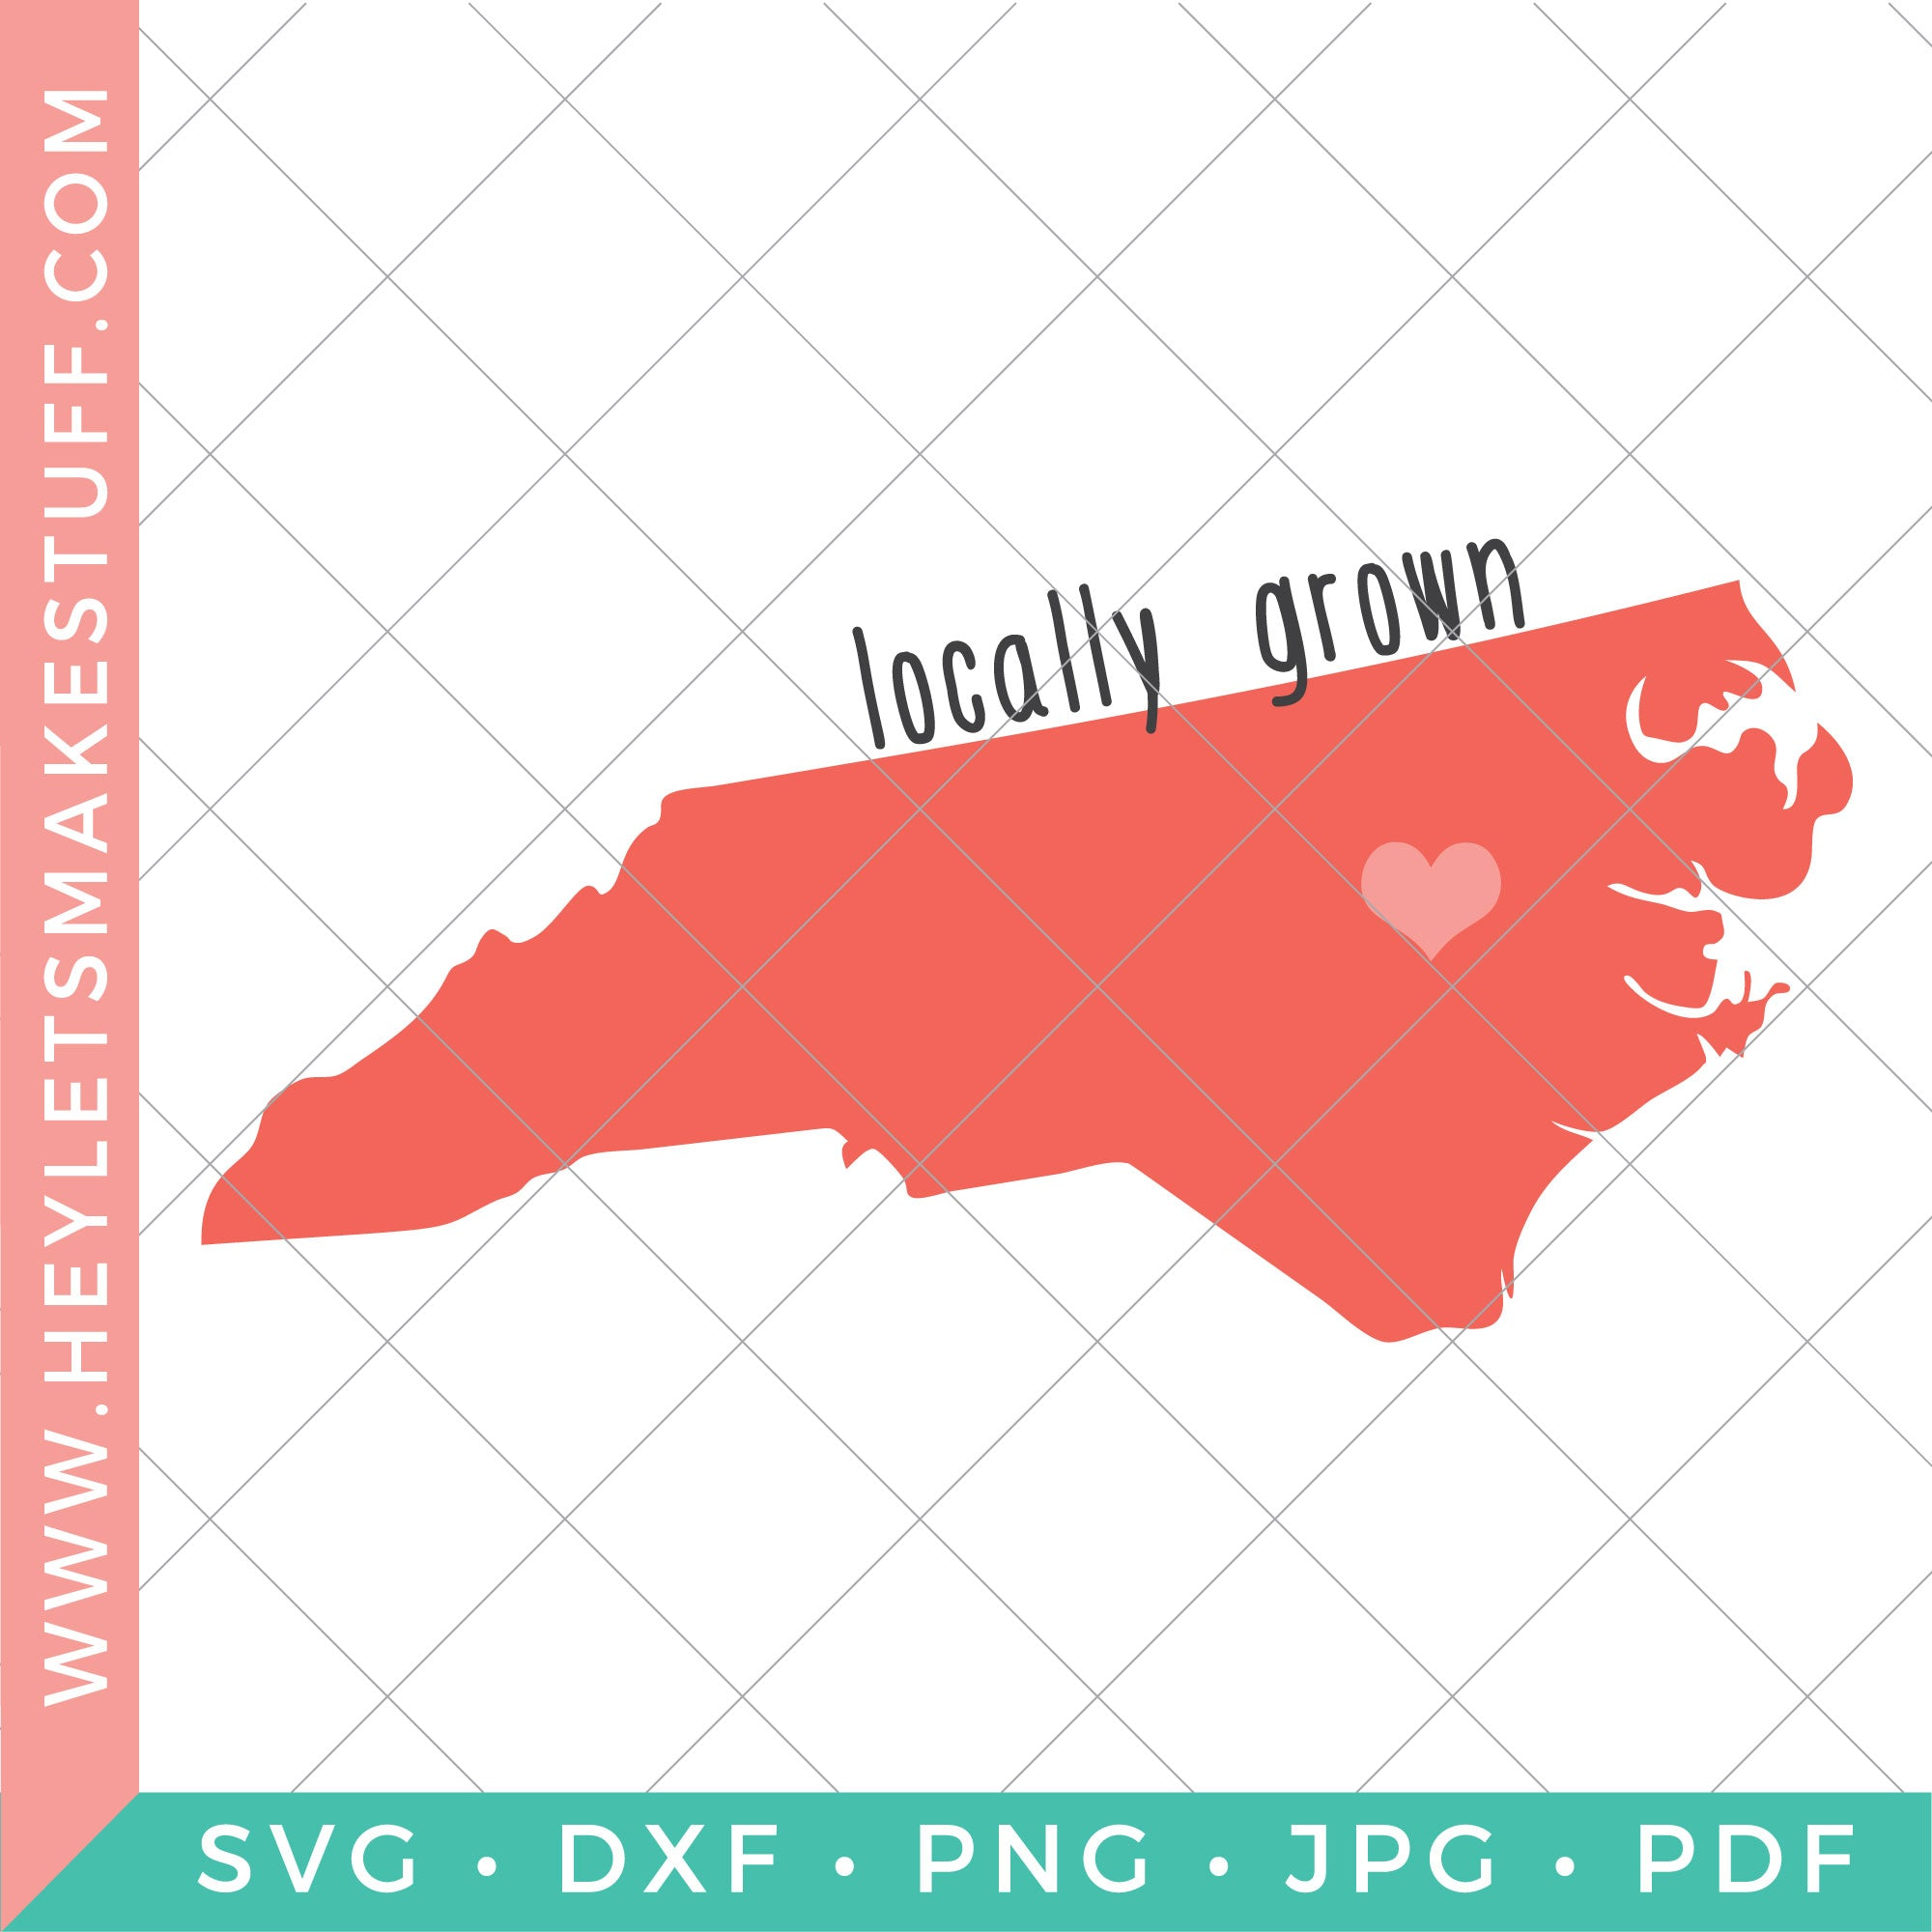 Locally Grown - North Carolina